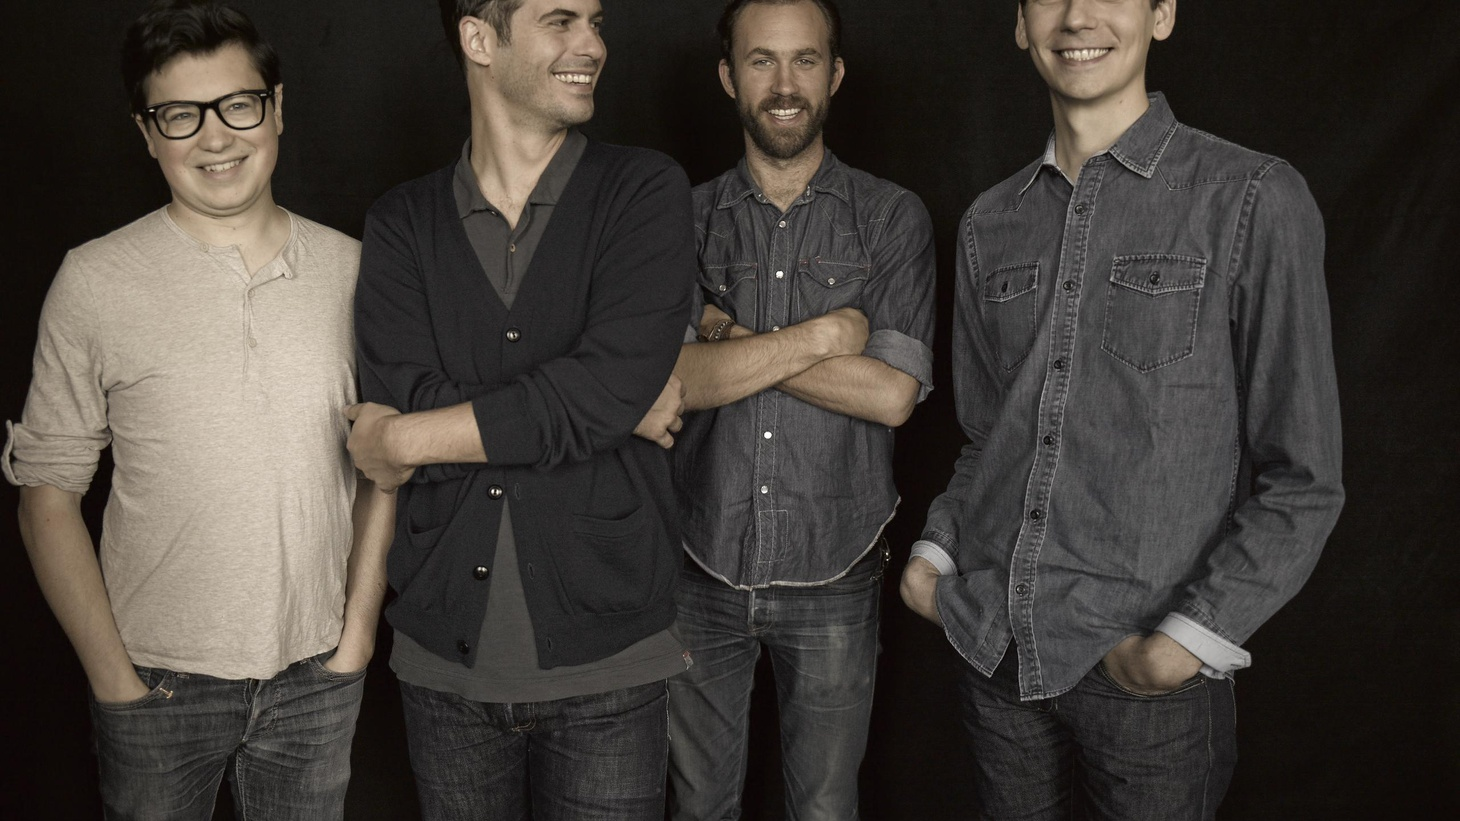 Austin-based band White Denim delivers an incredible rock experience at every live show...